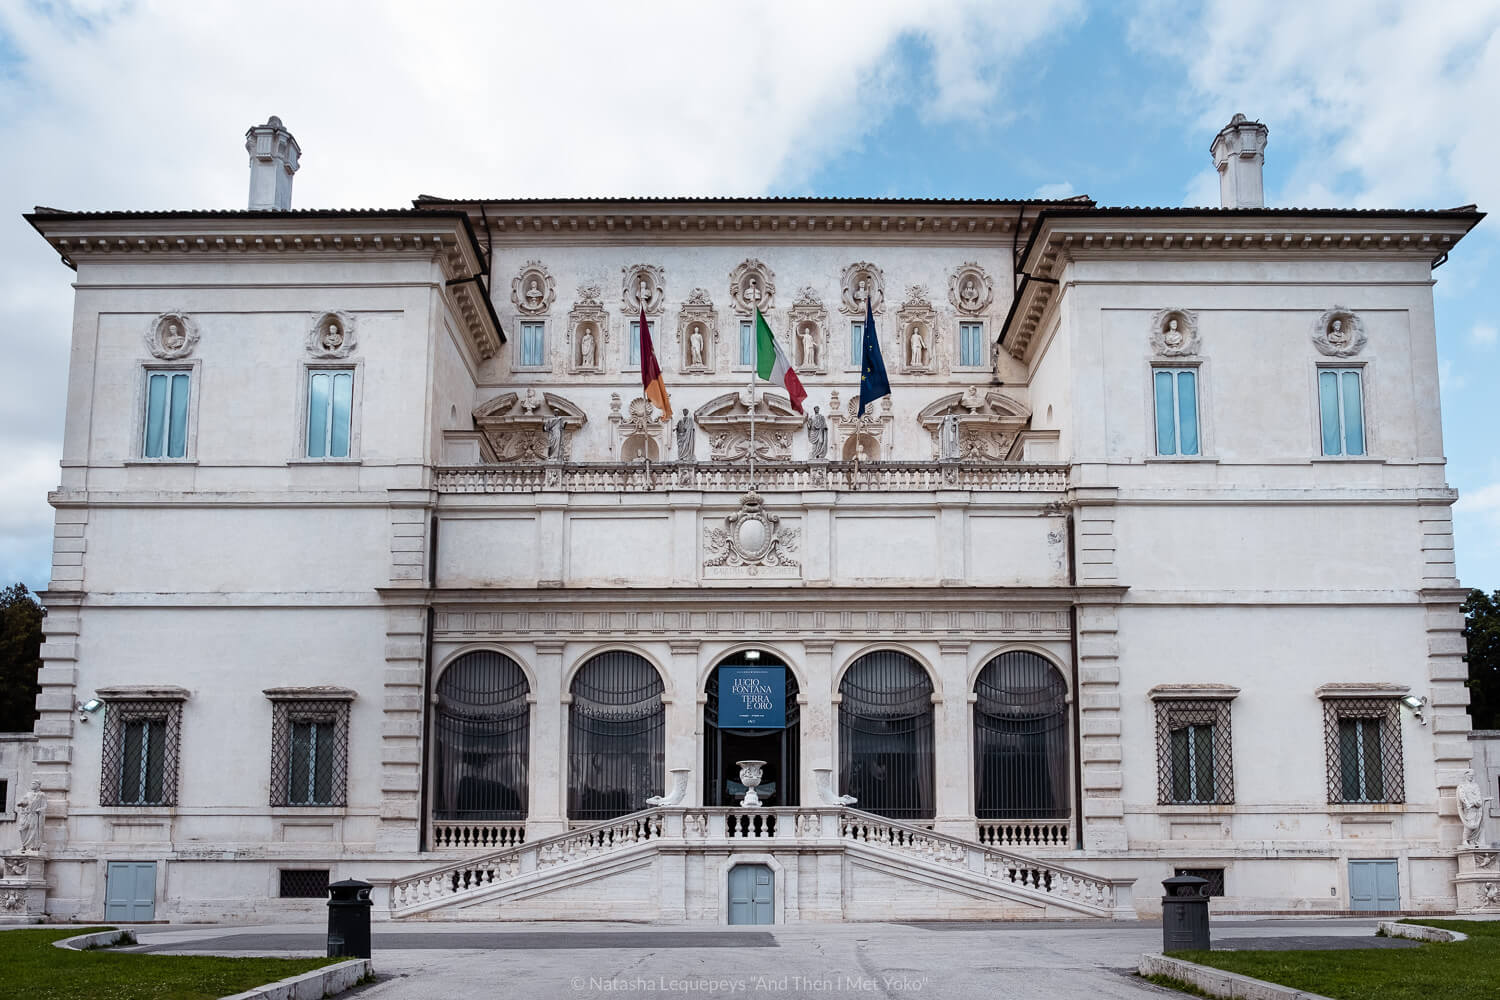 """The Borghese Gallery in Rome, Italy. Travel photography and guide by © Natasha Lequepeys for """"And Then I Met Yoko"""". #rome #italy #travelblog #travelphotography"""